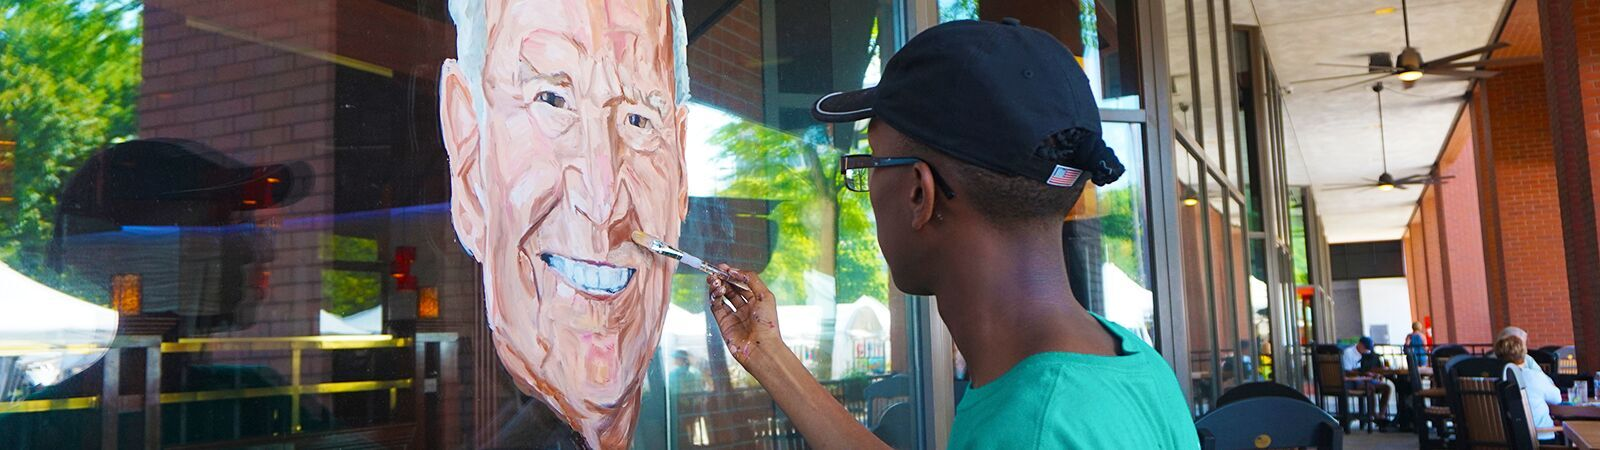 An artist paints a mural of Fort Wayne Mayor Tom Henry during the Three Rivers Festival downtown. <span class='image-credits'>By Stephen J. Bailey</span>